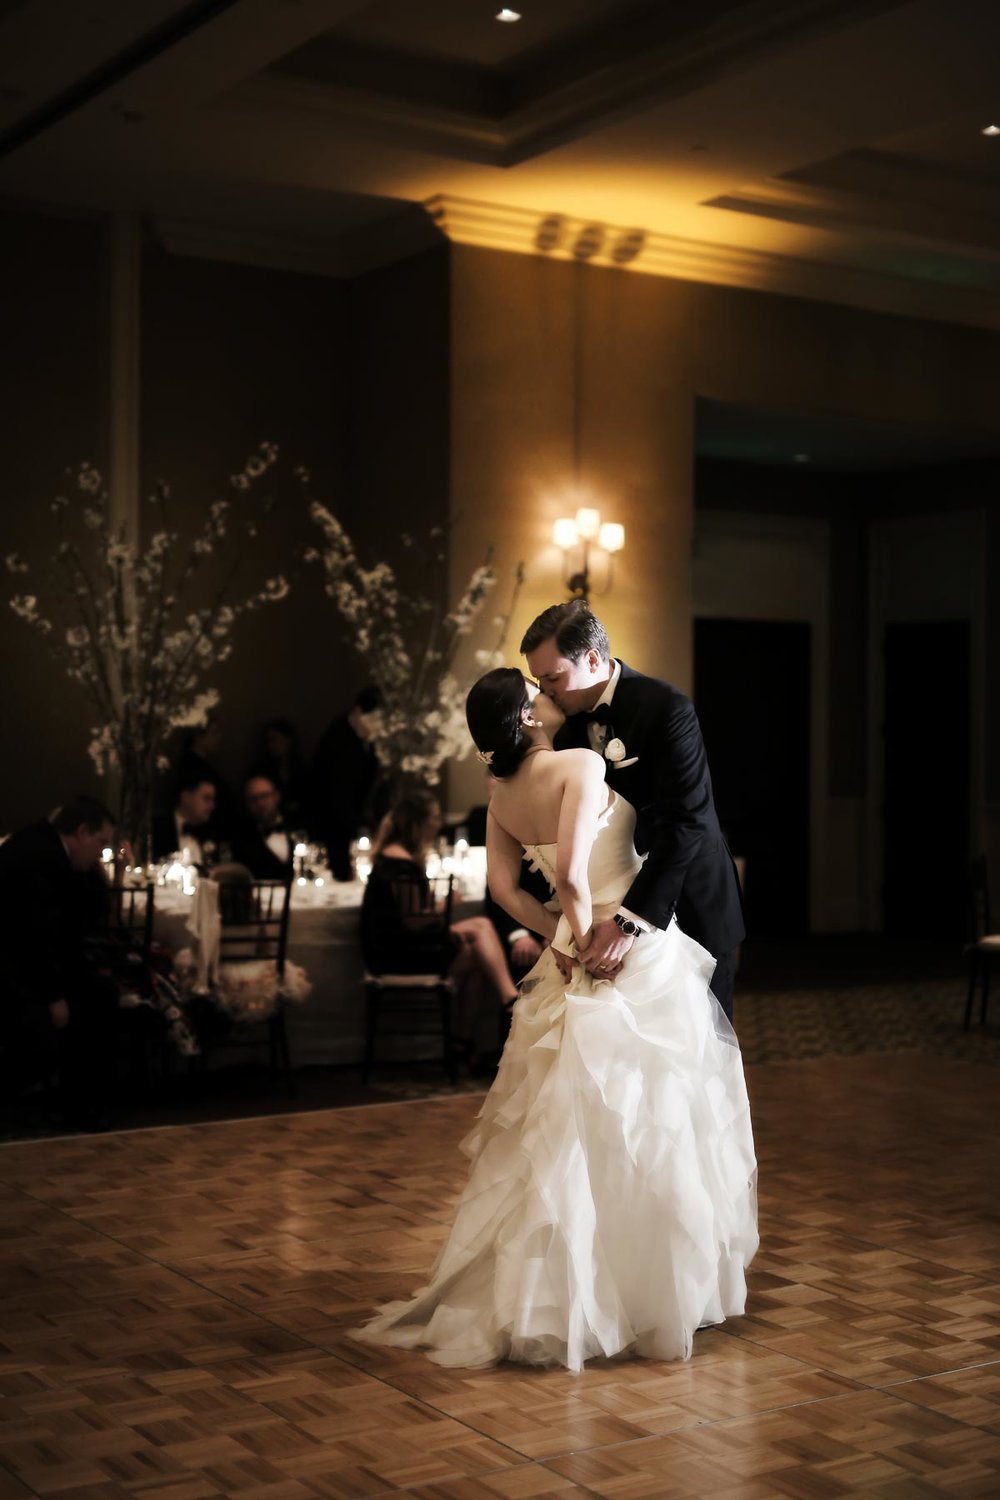 first-dance-real-wedding-montage-deer-valley-park-city-weddings_pepper_nix_photography-51.jpg